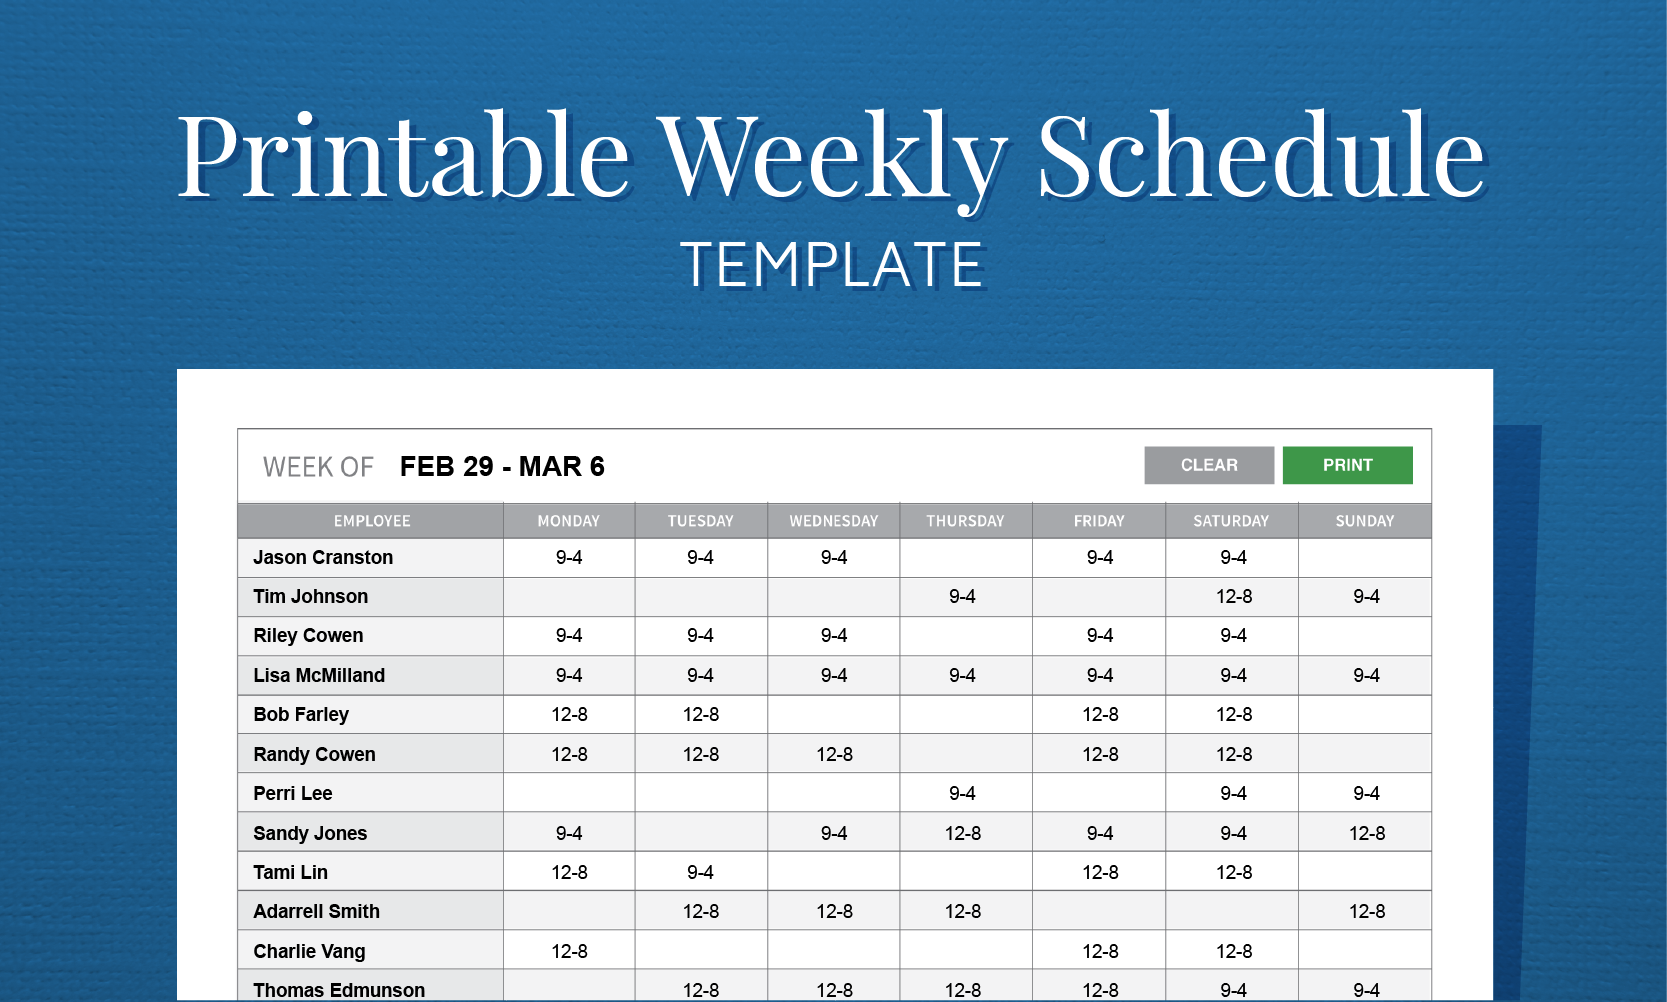 Free Employee Schedule Template | charlotte clergy coalition